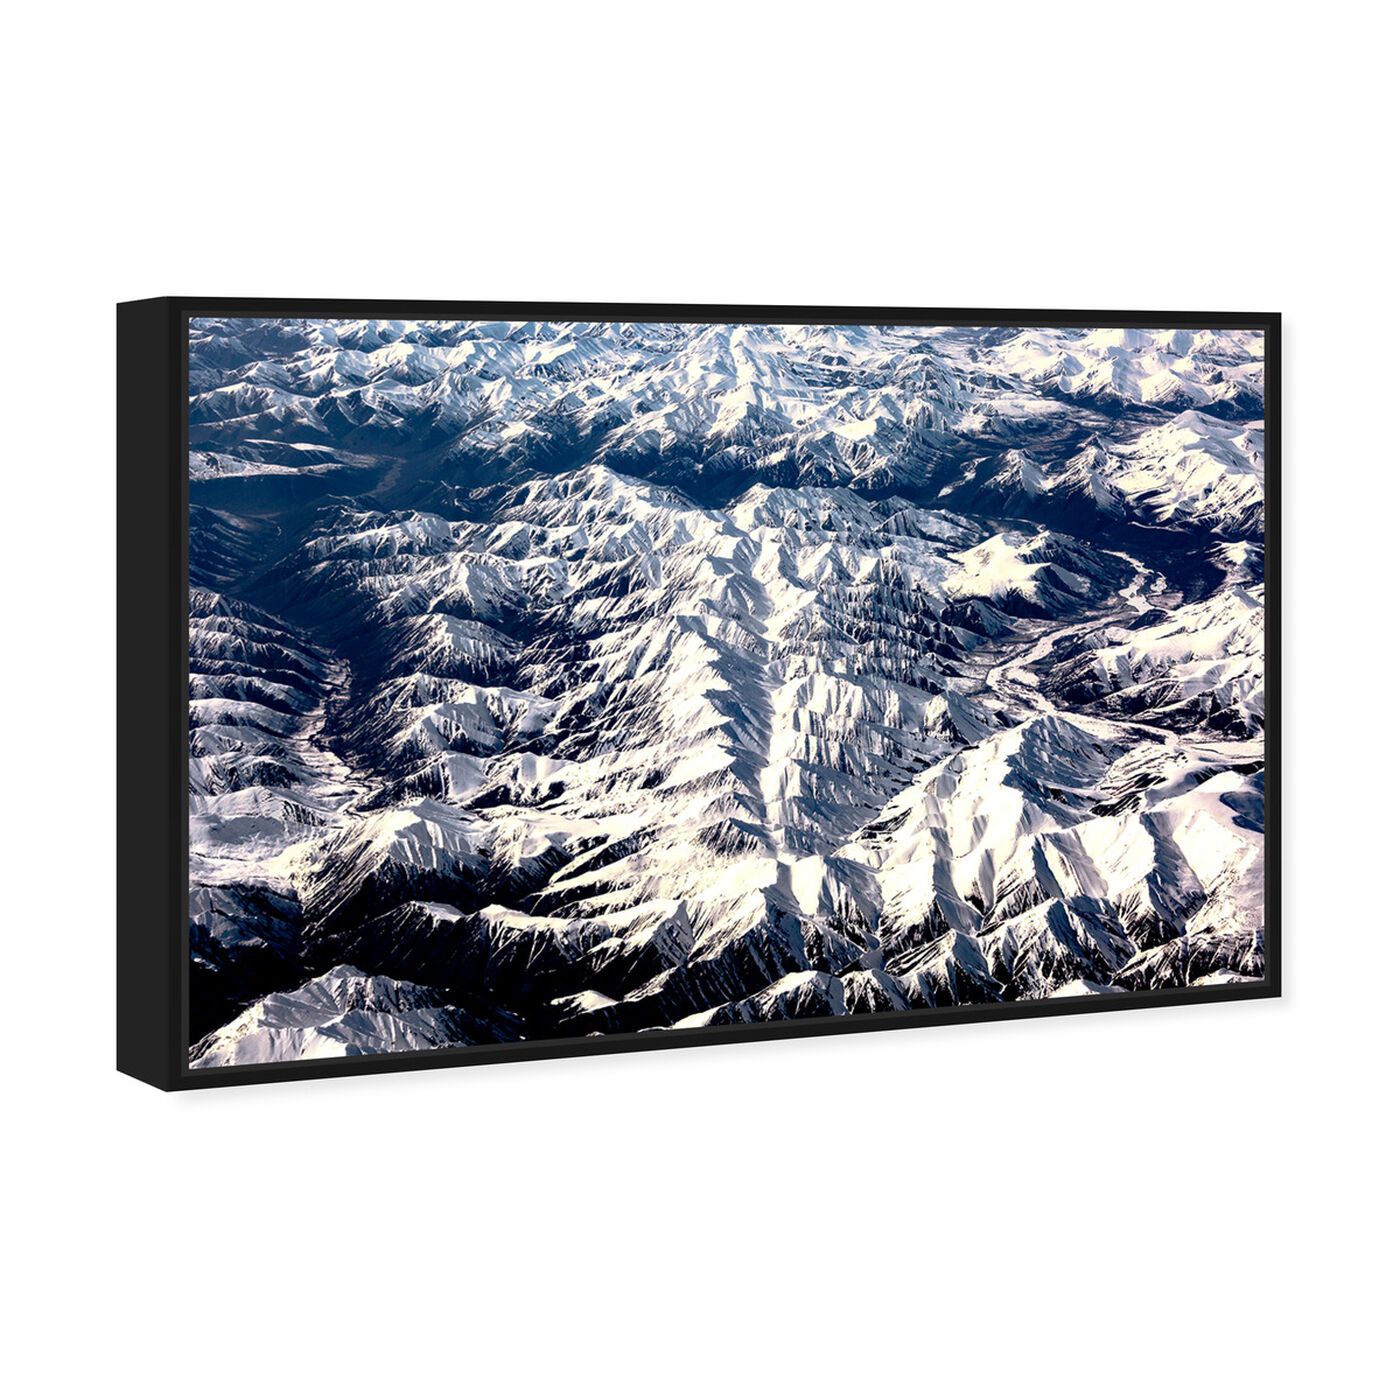 Angled view of Curro Cardenal - Aero View III featuring nature and landscape and mountains art.